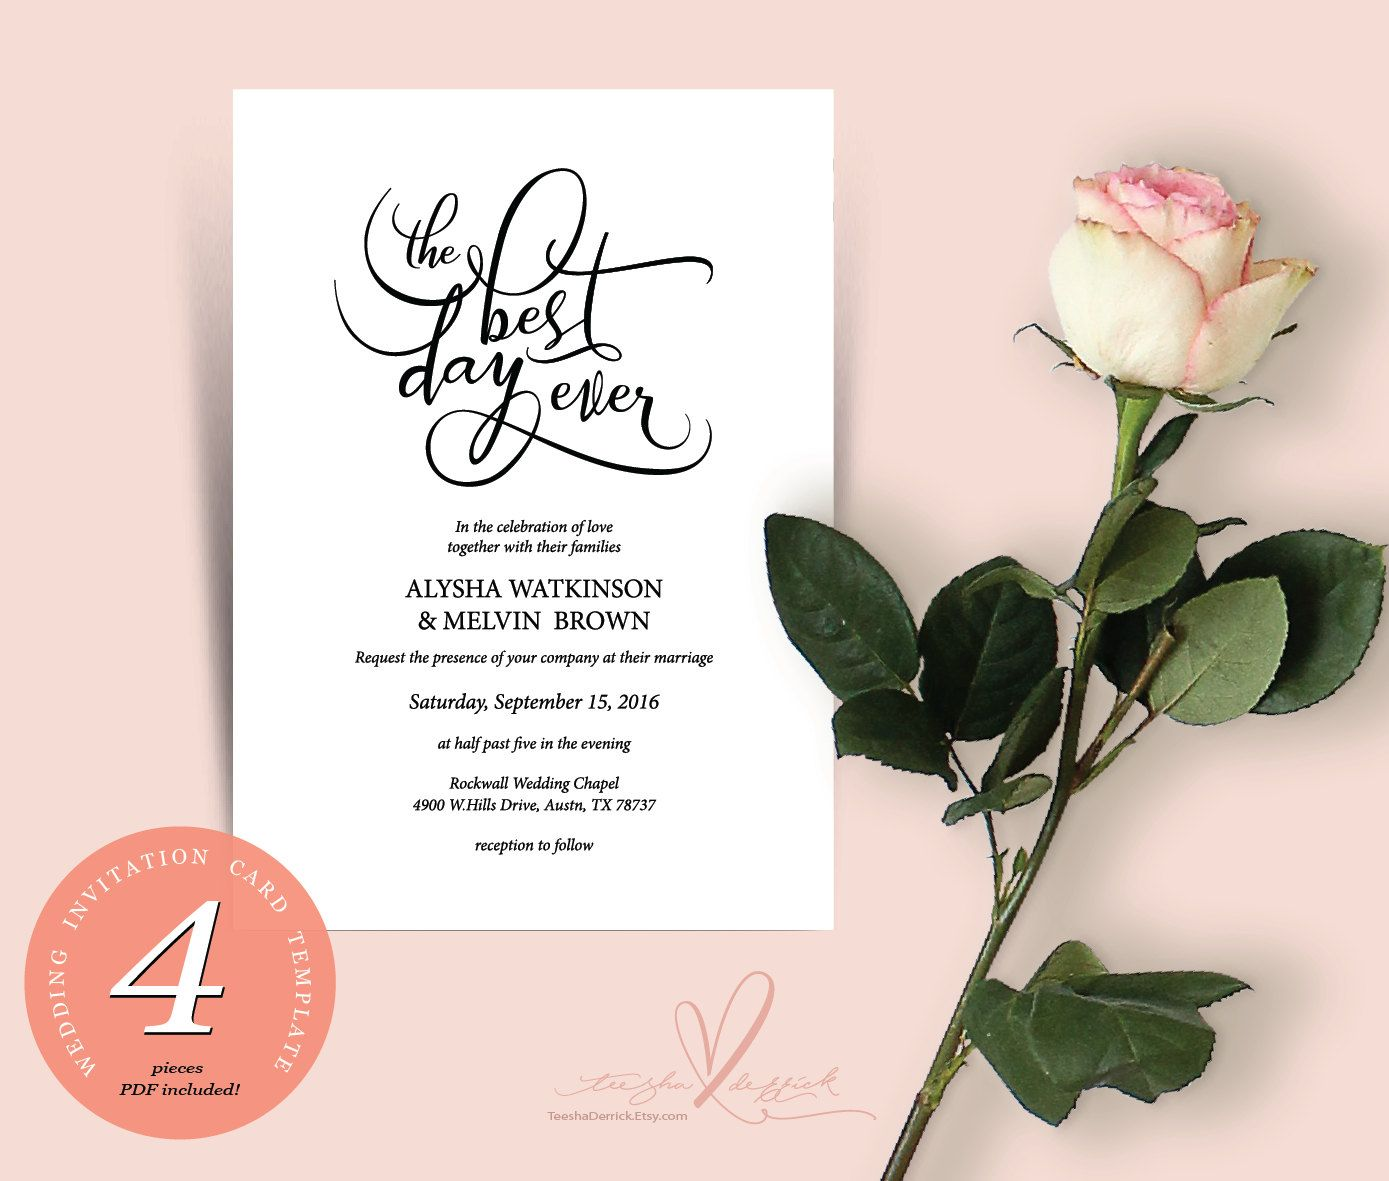 We do wedding invitation cards in instant download pdf template the best day ever wedding invitation cards pdf template kraft rustic typography theme wedding invitation set in pdf file stopboris Choice Image